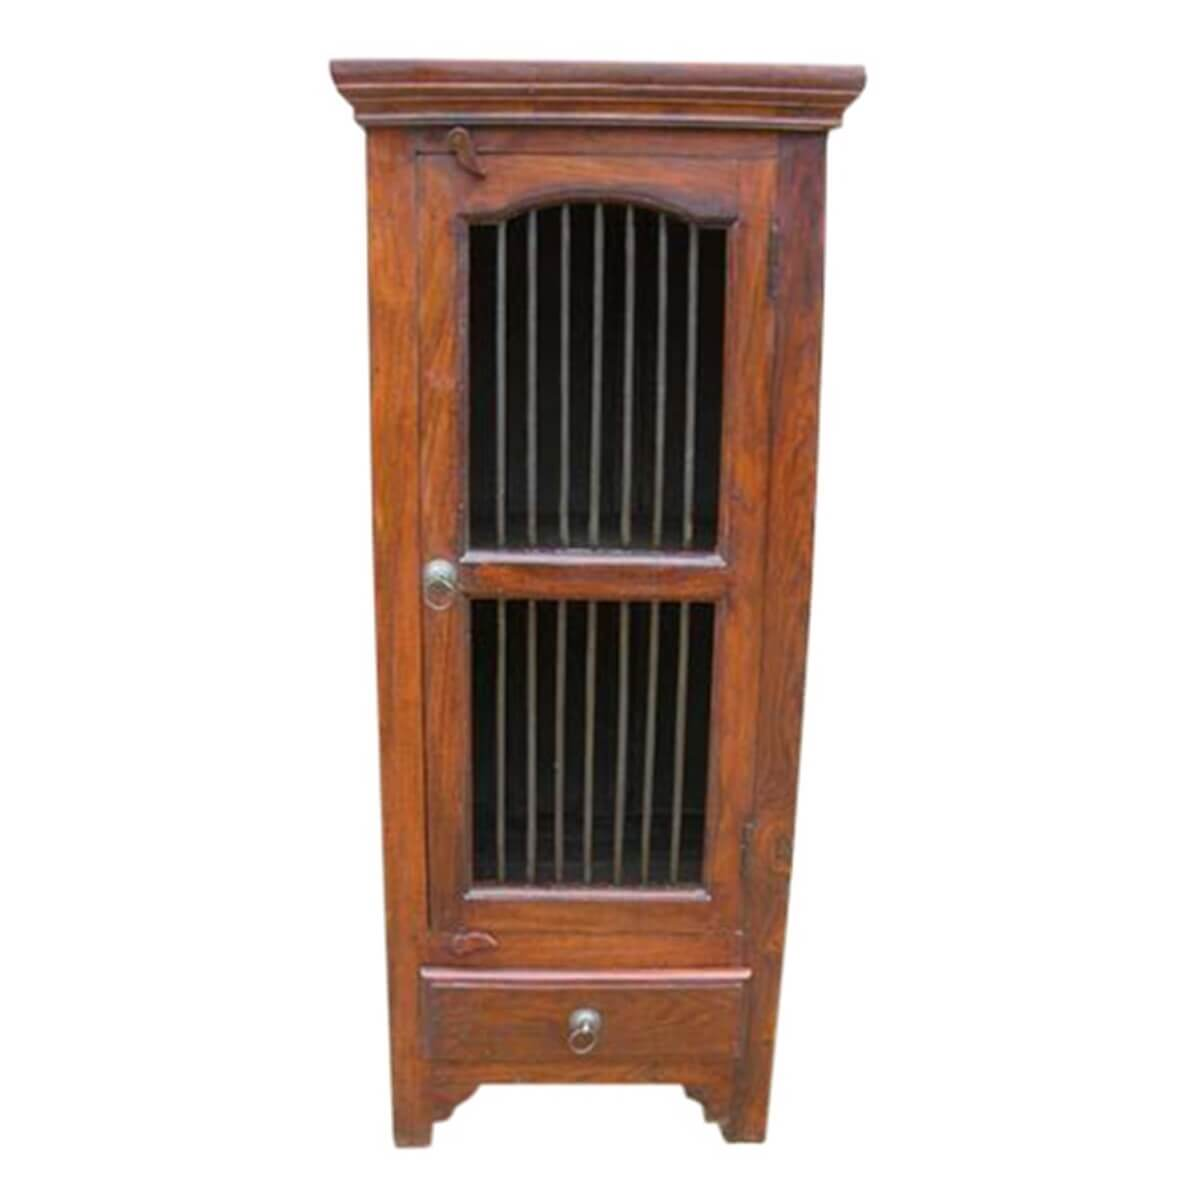 Kitchen Wardrobe Cabinet: Armoire Solid Wood Kitchen Cabinet Table